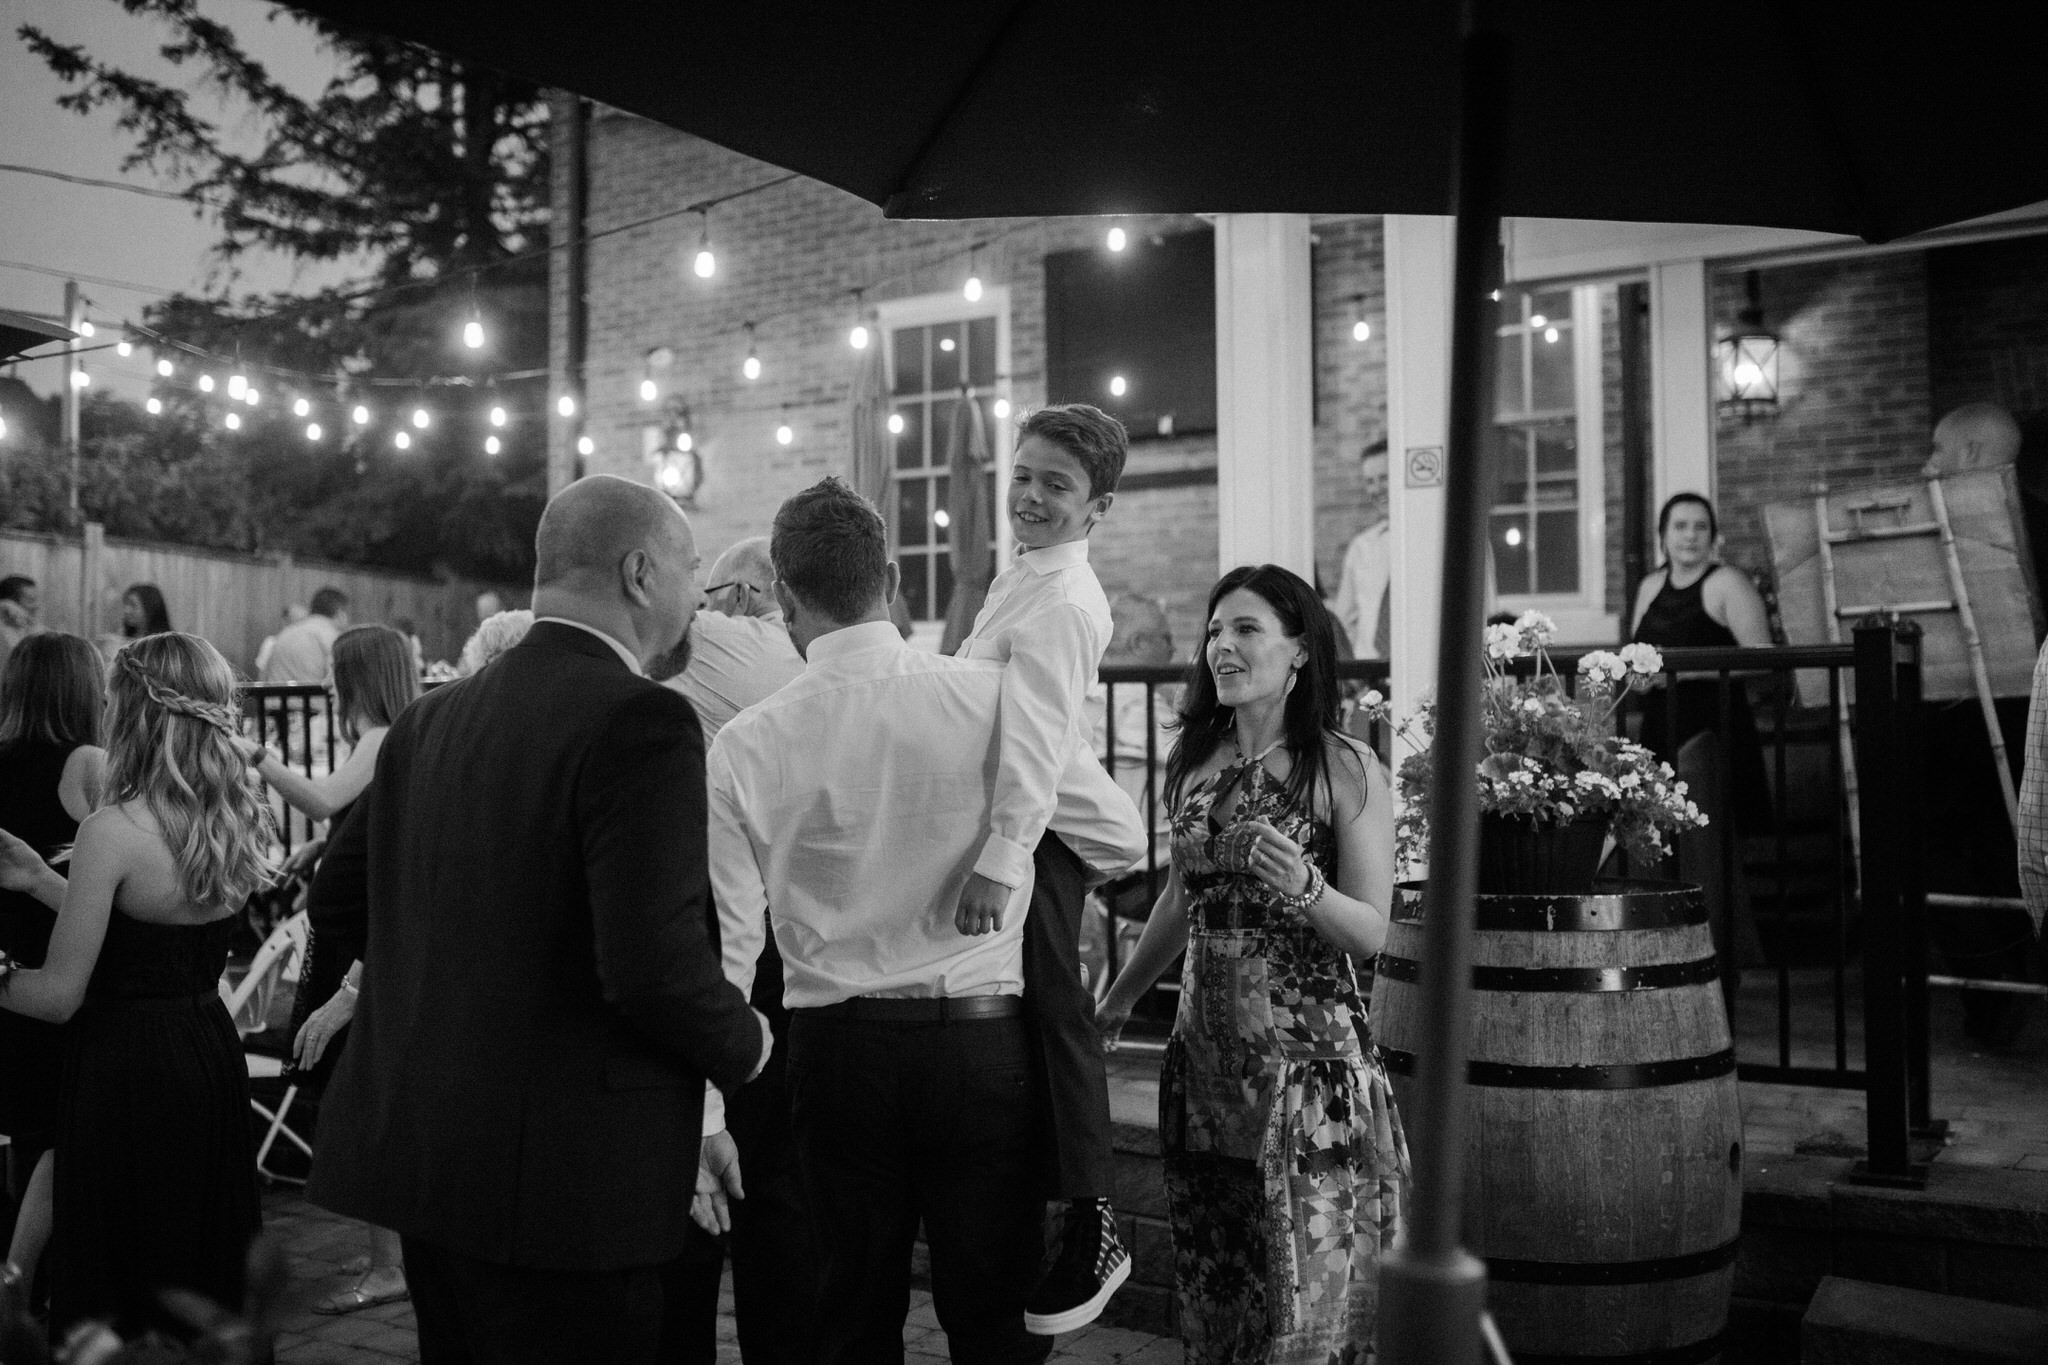 Harvest Restaurant Wedding Brooklin Ontario - Father carrying son under string lights on patio